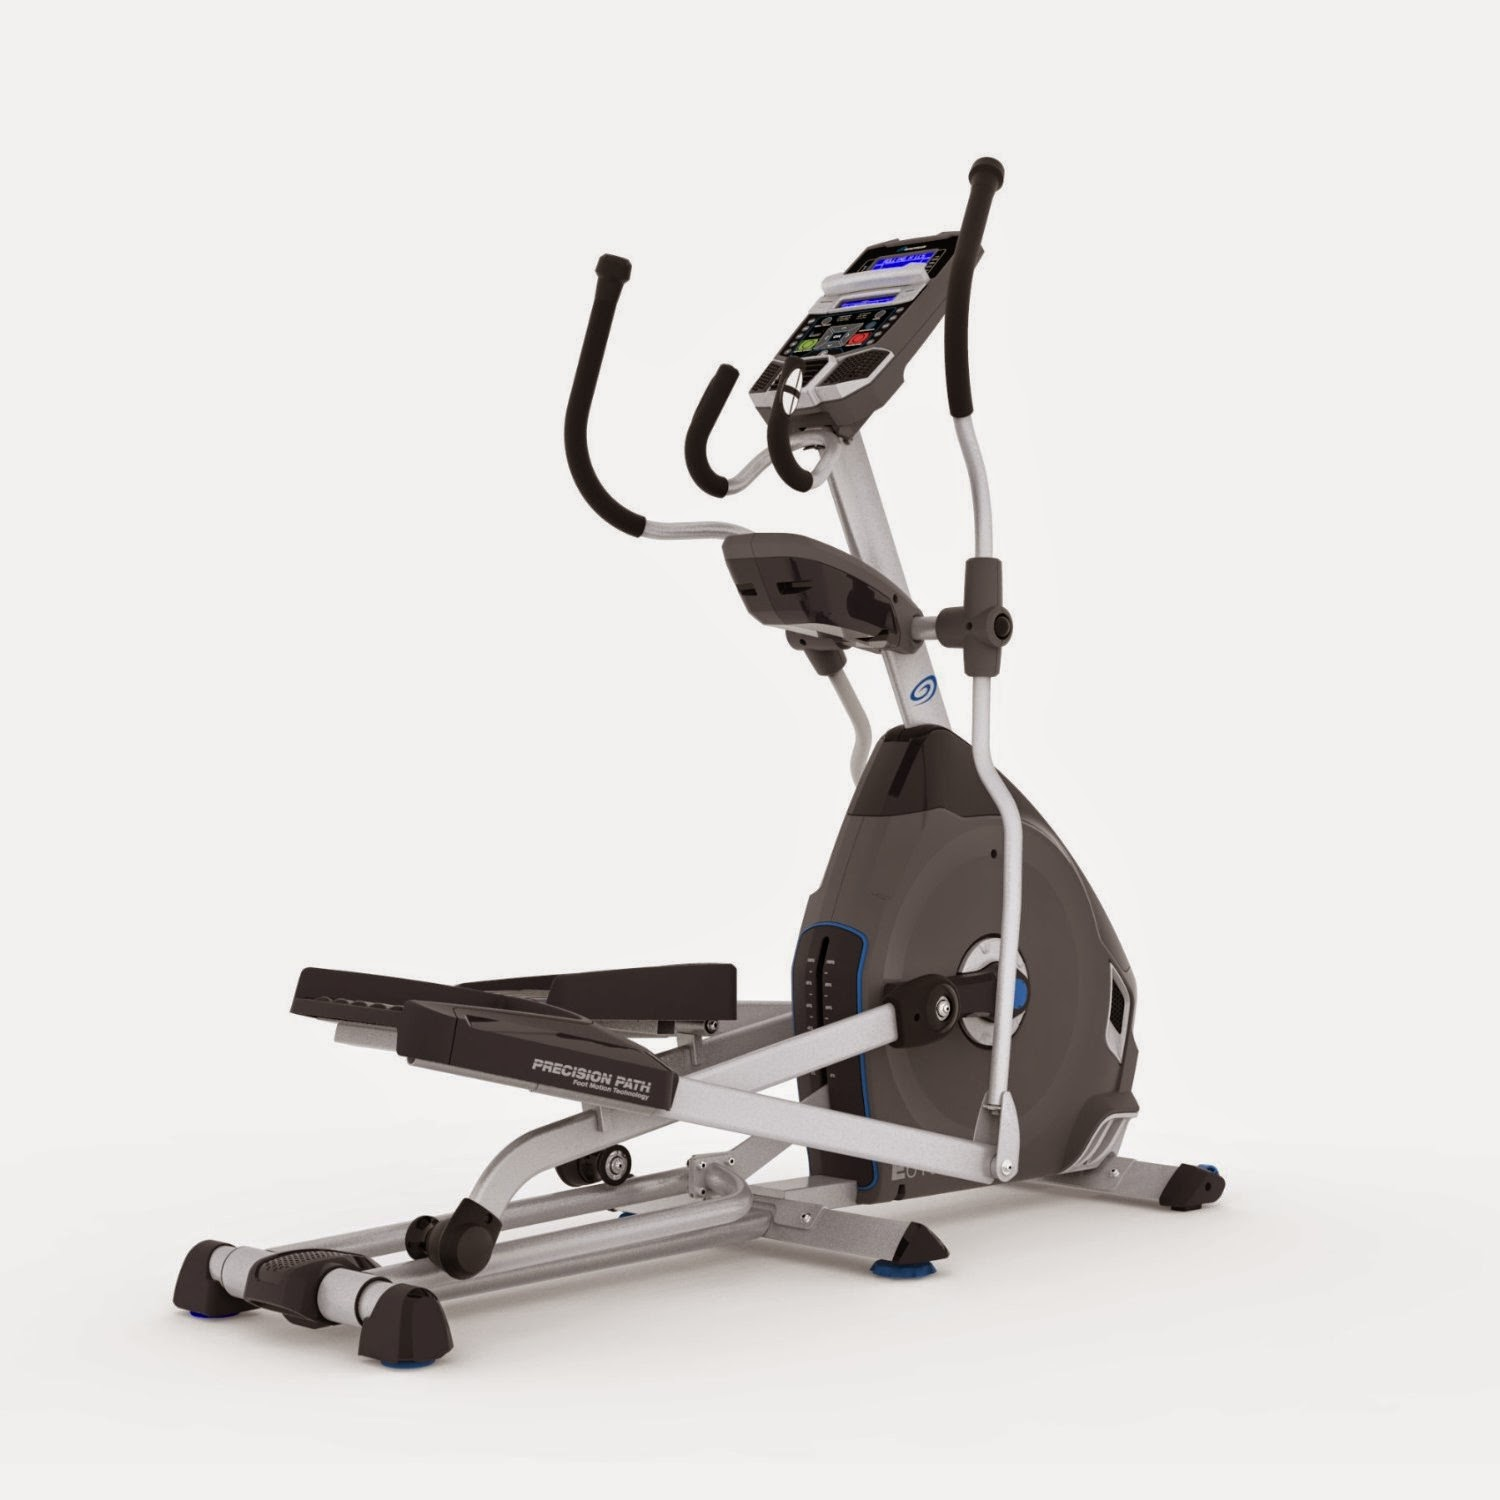 Nautilus E616 Elliptical Trainer, review, 29 workout programs, 25 resistance levels, Bluetooth connectivity, 20 inch stride length, acoustic chambered speakers, motorized incline, blue backlit dual track LCD display, compare with Nautilus E614